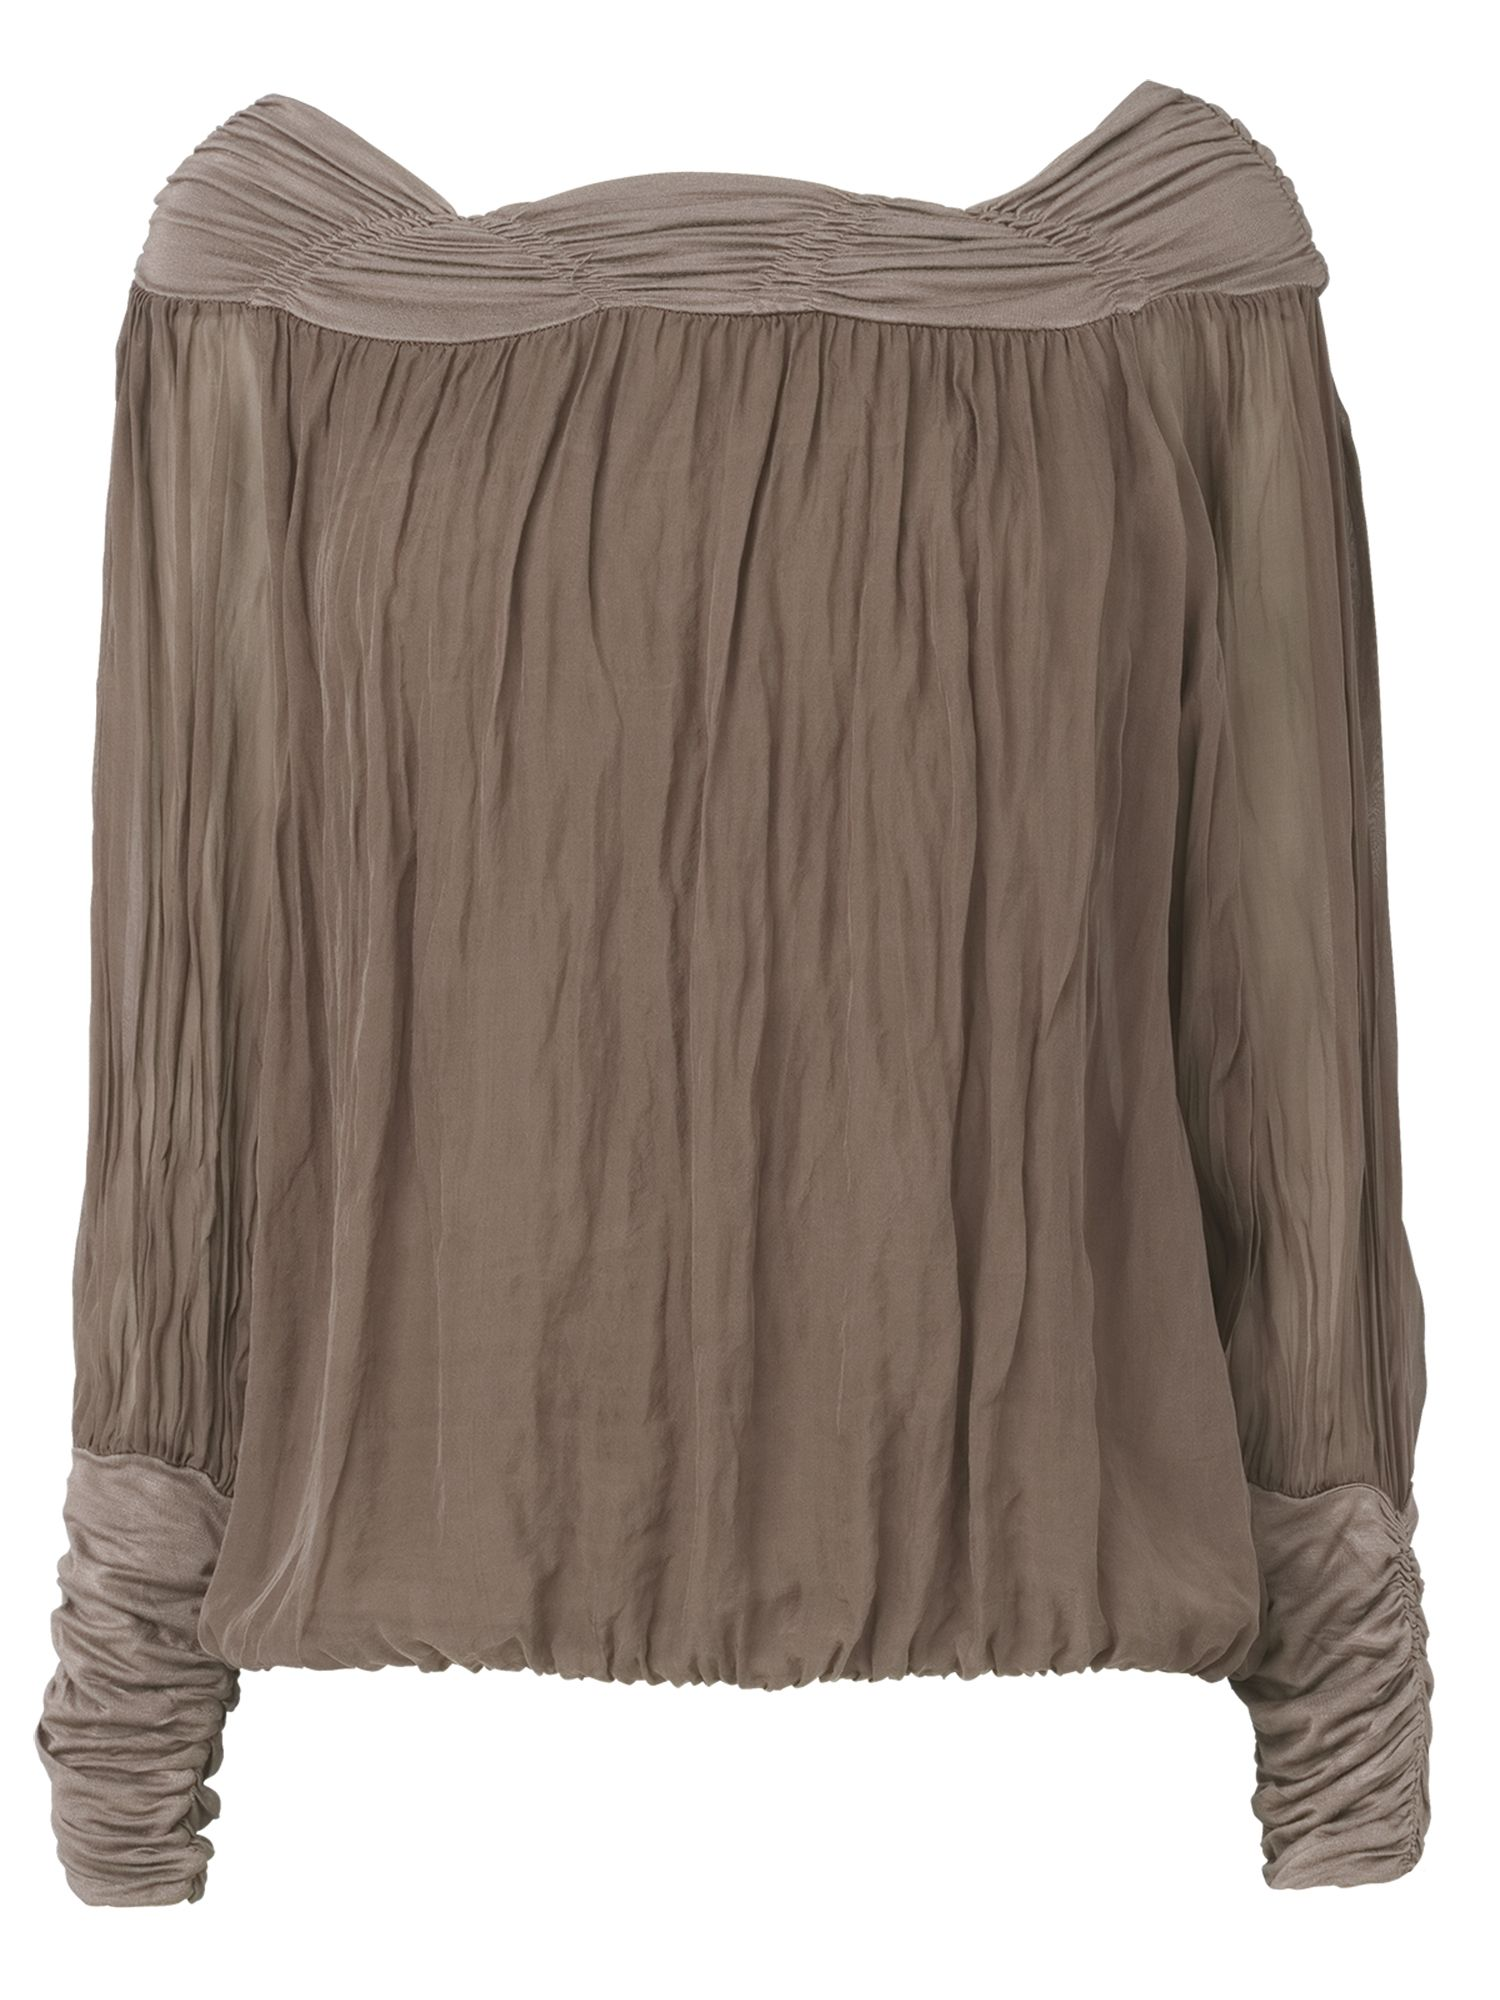 Phase Eight Gypsy silk blouse - Rose L,L,M,M,S,S product image